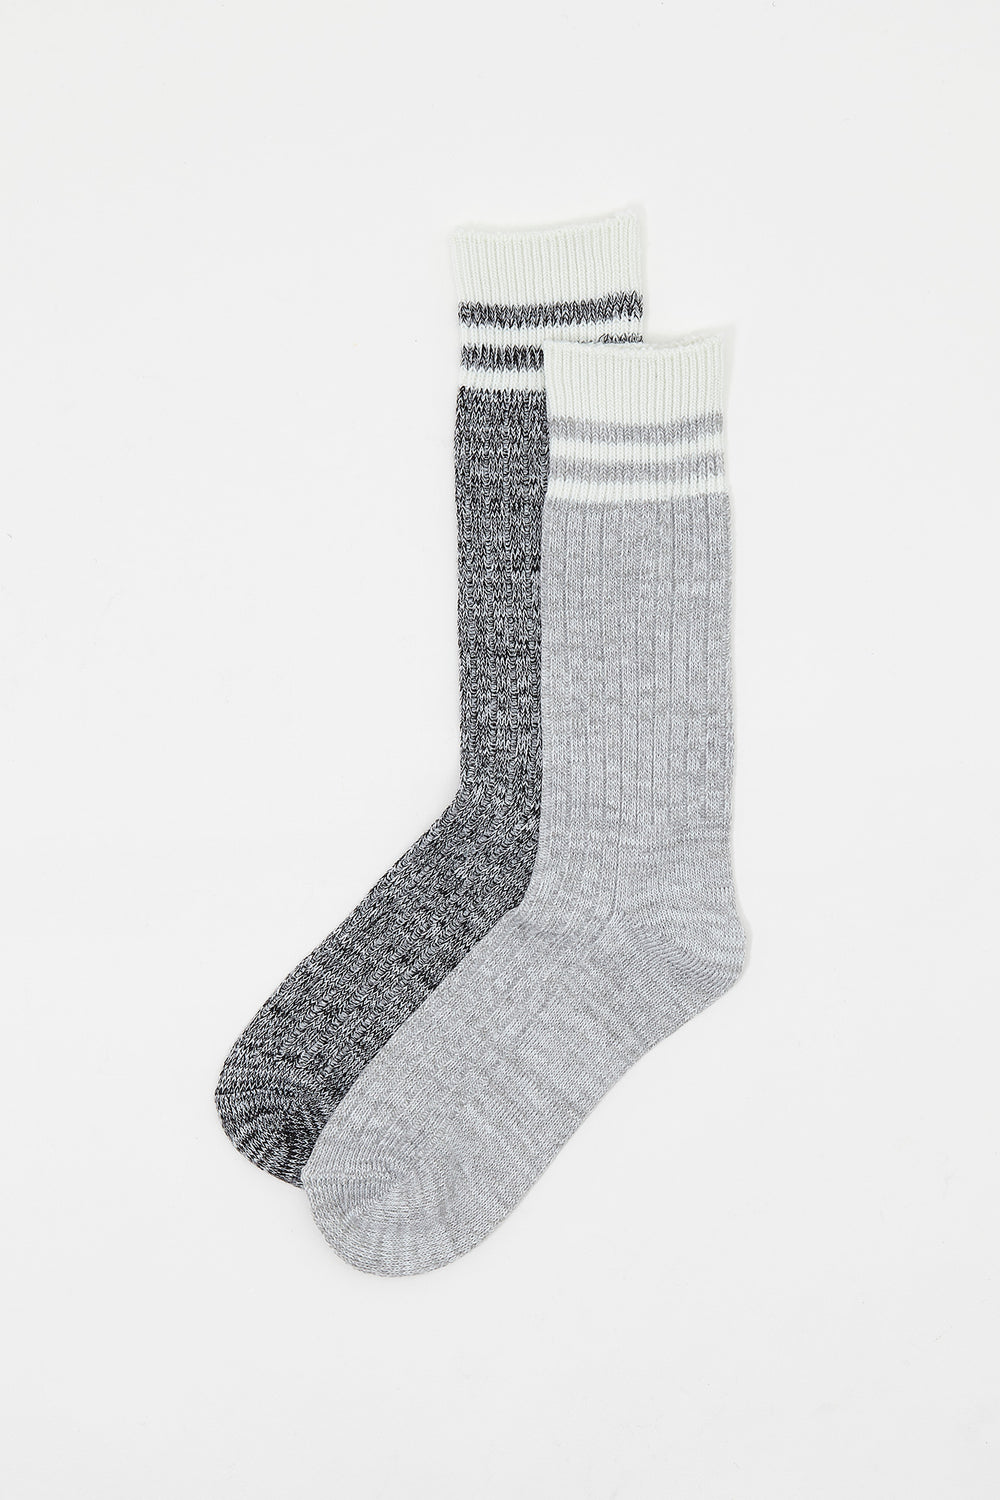 Salt and Pepper Boot Socks (2 Pairs) Heather Grey